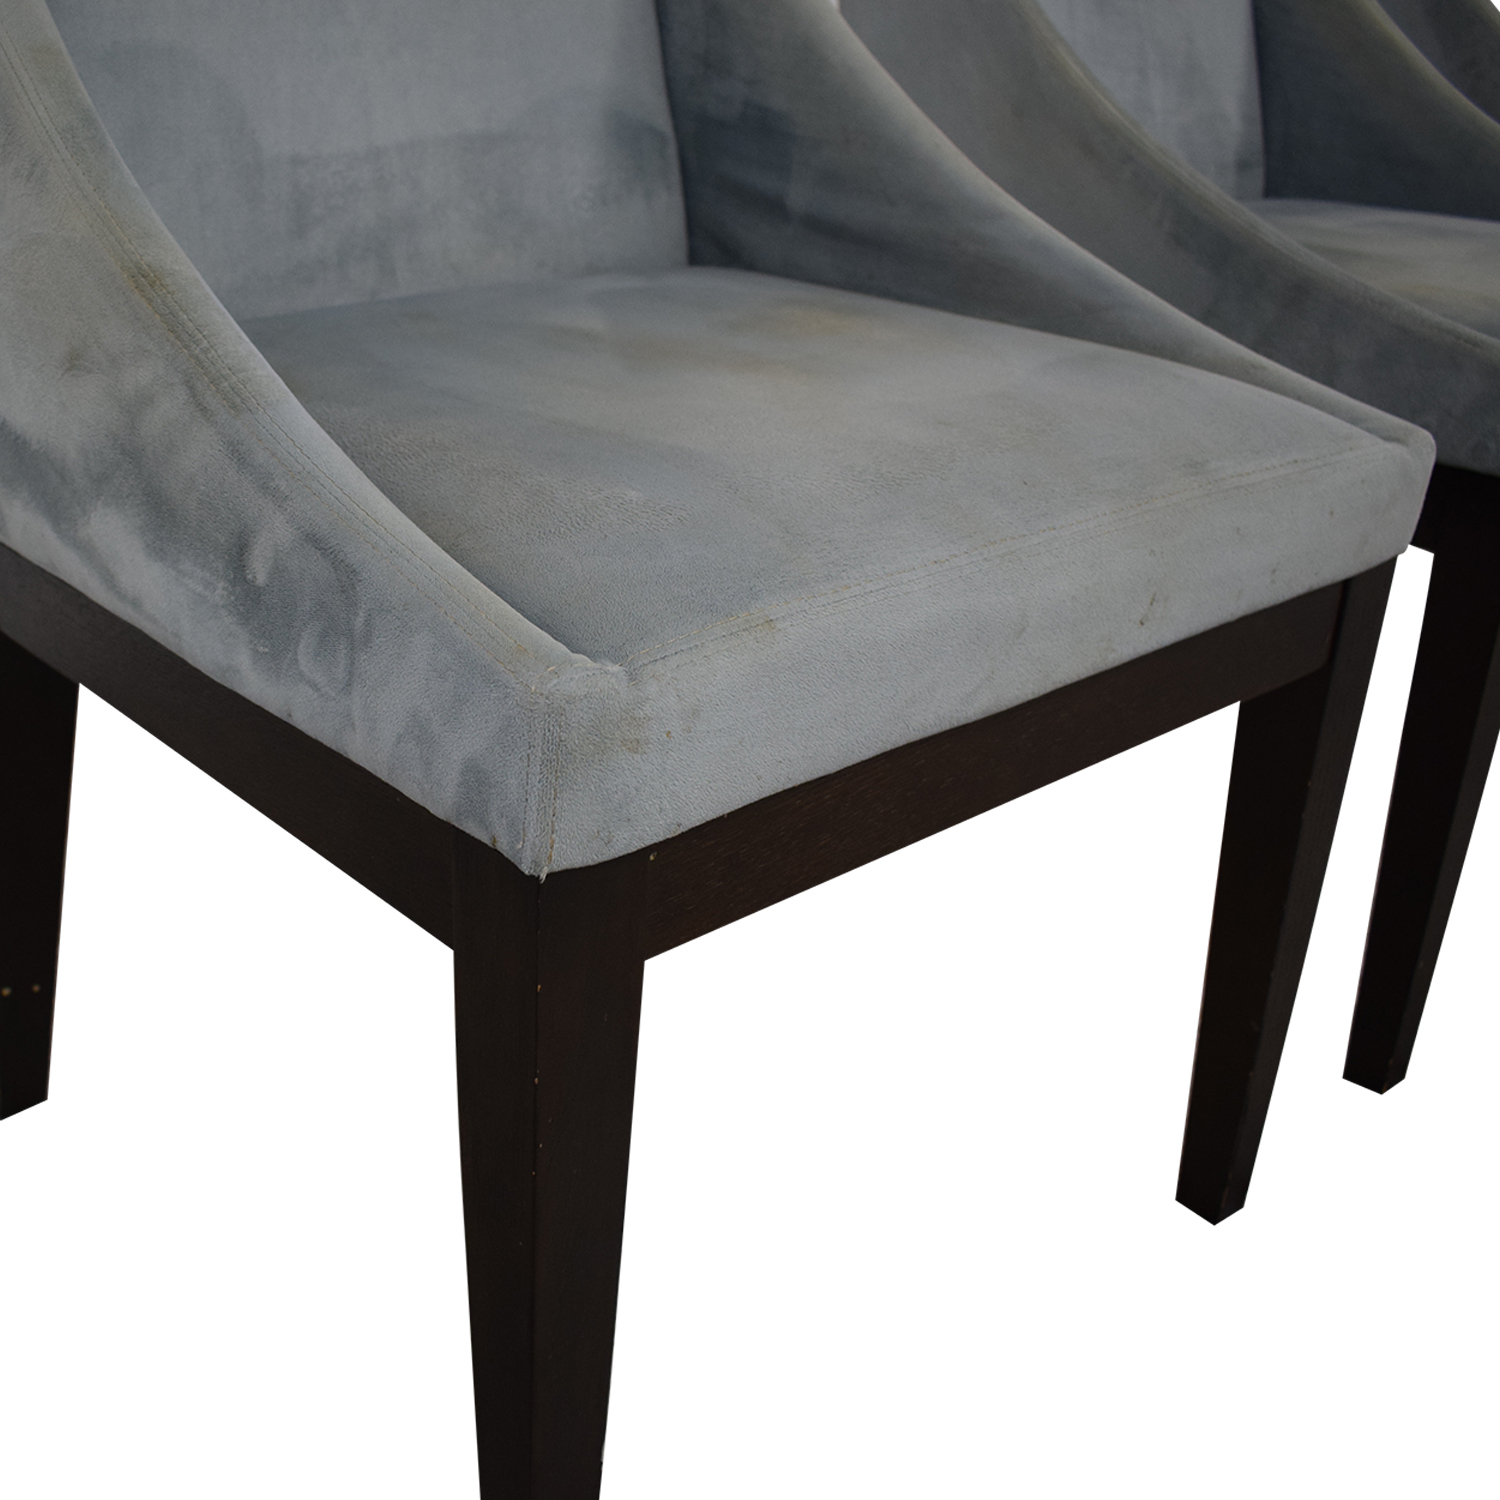 West Elm Upholstered Dining Chairs sale